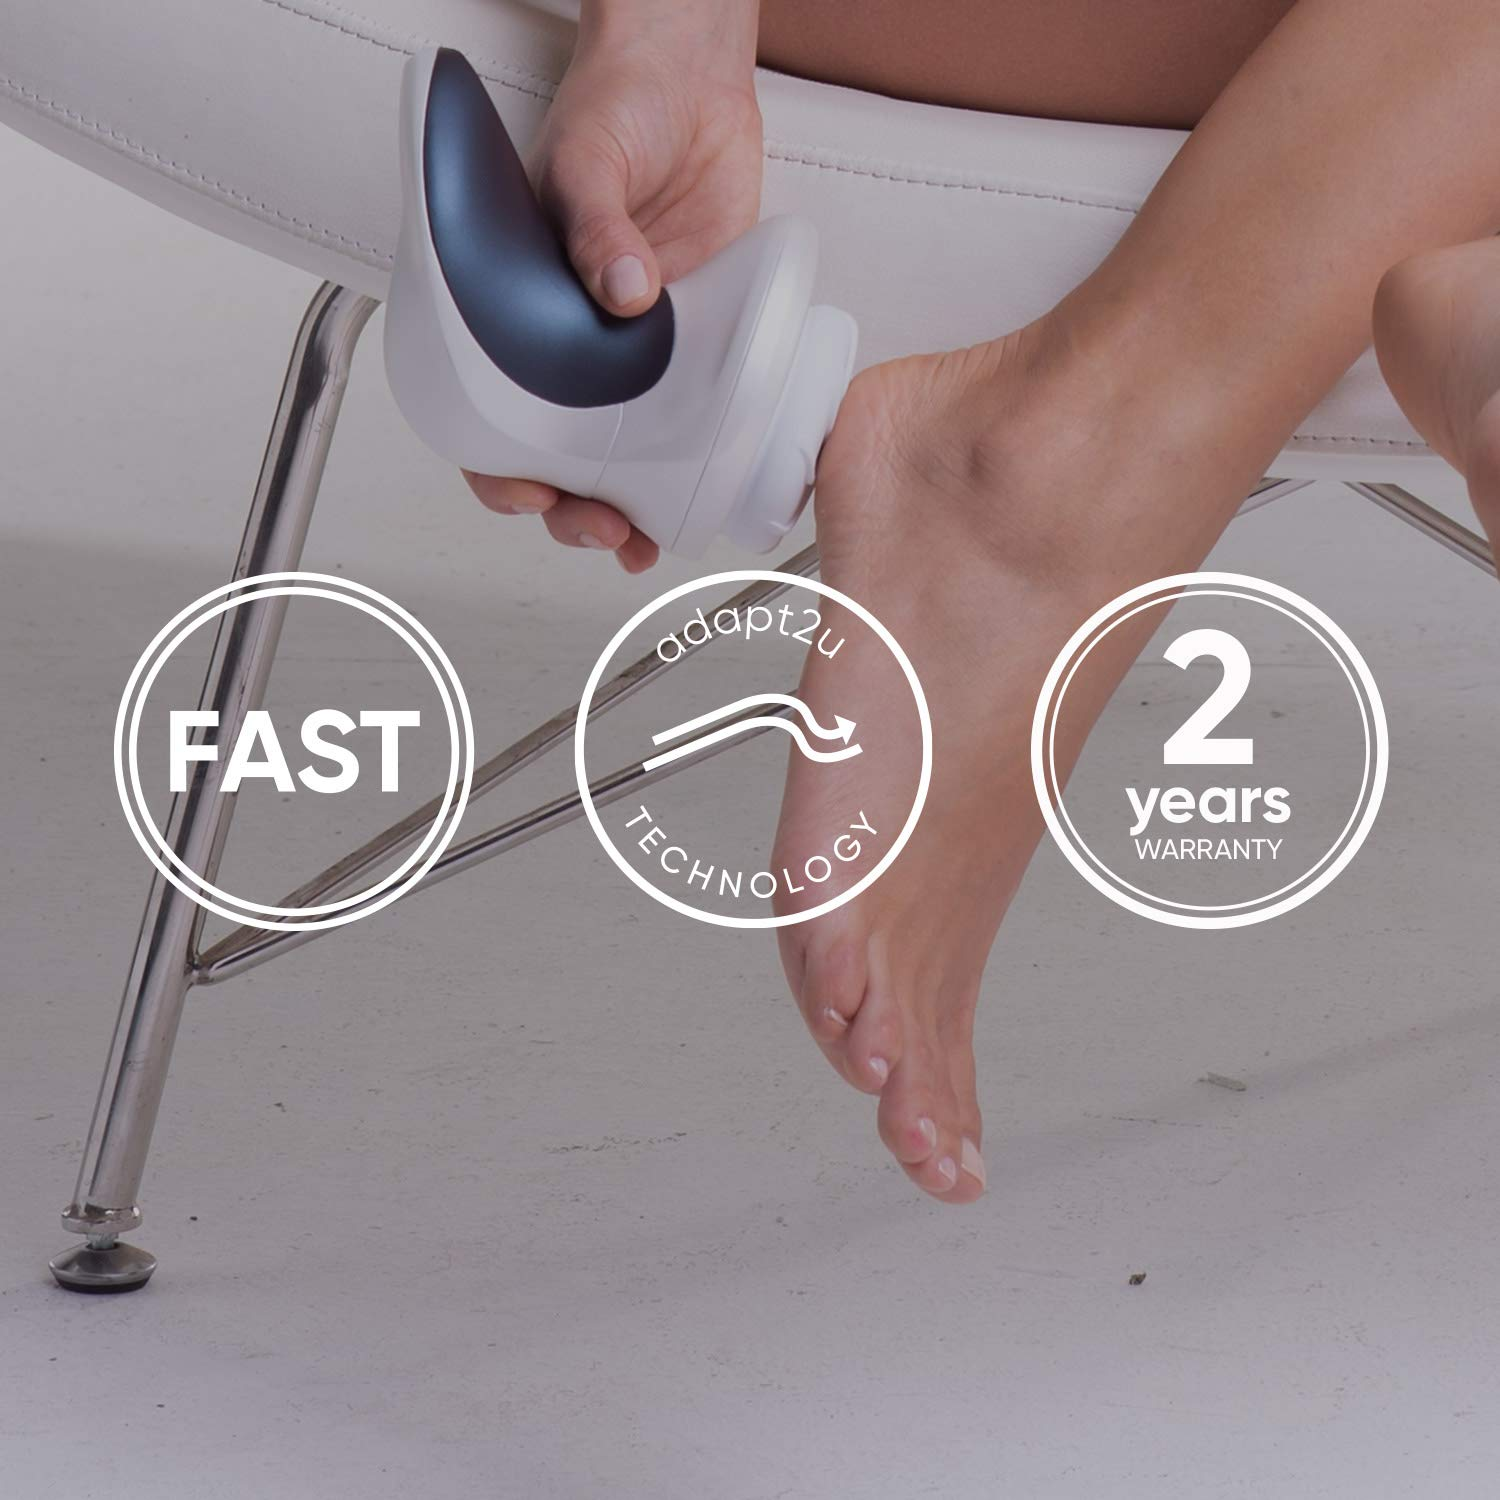 Sensimatch- Sensica\'s Portable Body Peeling And Pedicure Electronic Machine For A Rejuvenated Tighten Skin. Sensimatch Is A Great Callus For Feet, Legs Hands, Ankle, Heels, Back, Neck, Shoulders